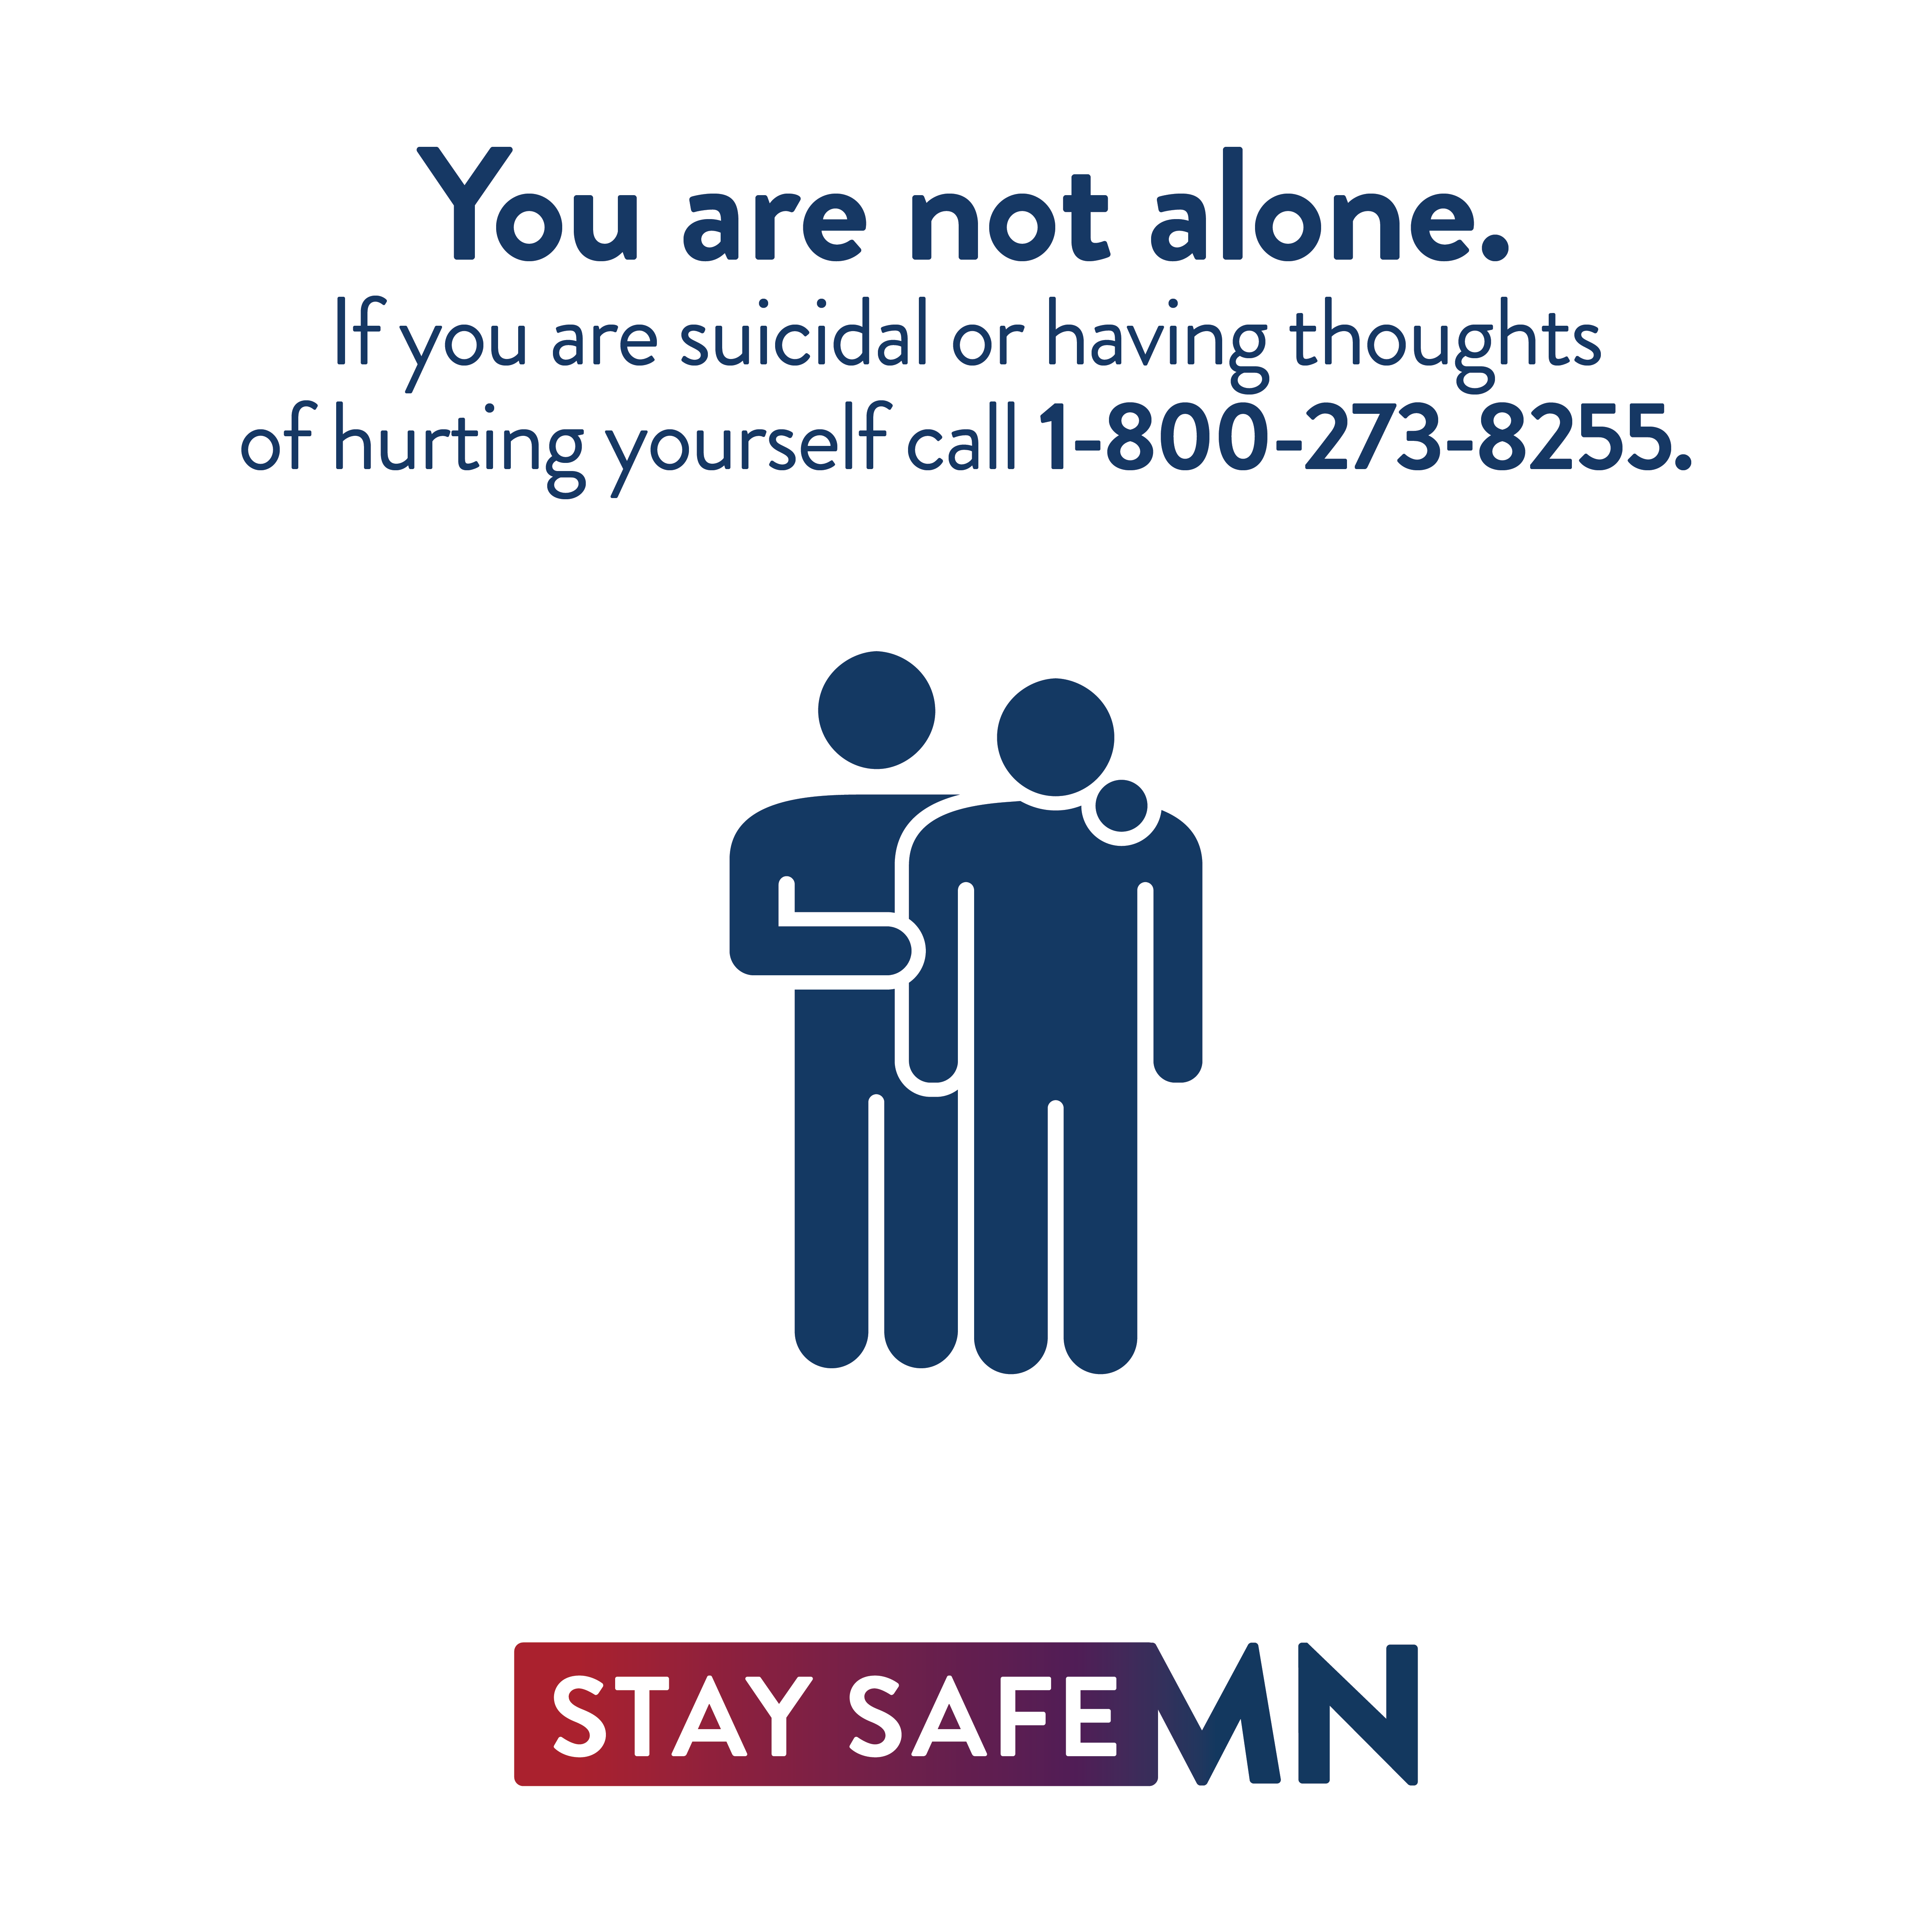 You are not alone. If you are suicidal or having thoughts of hurting yourself call 1-800-273-8255.